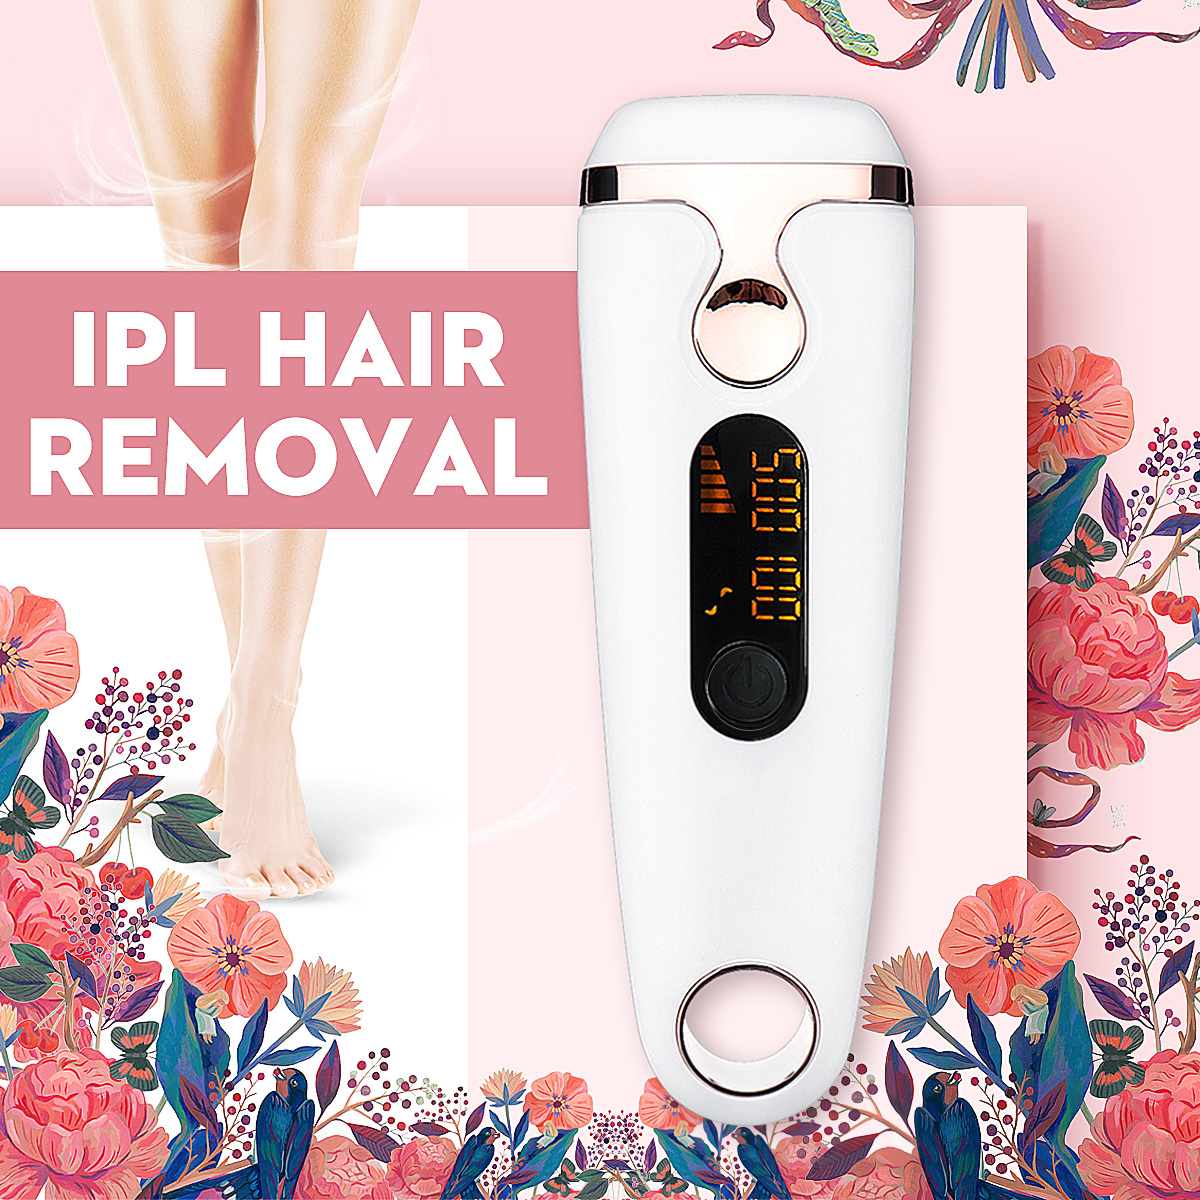 Painless Laser Epilator IPL Permanent Freezing Hair Remover